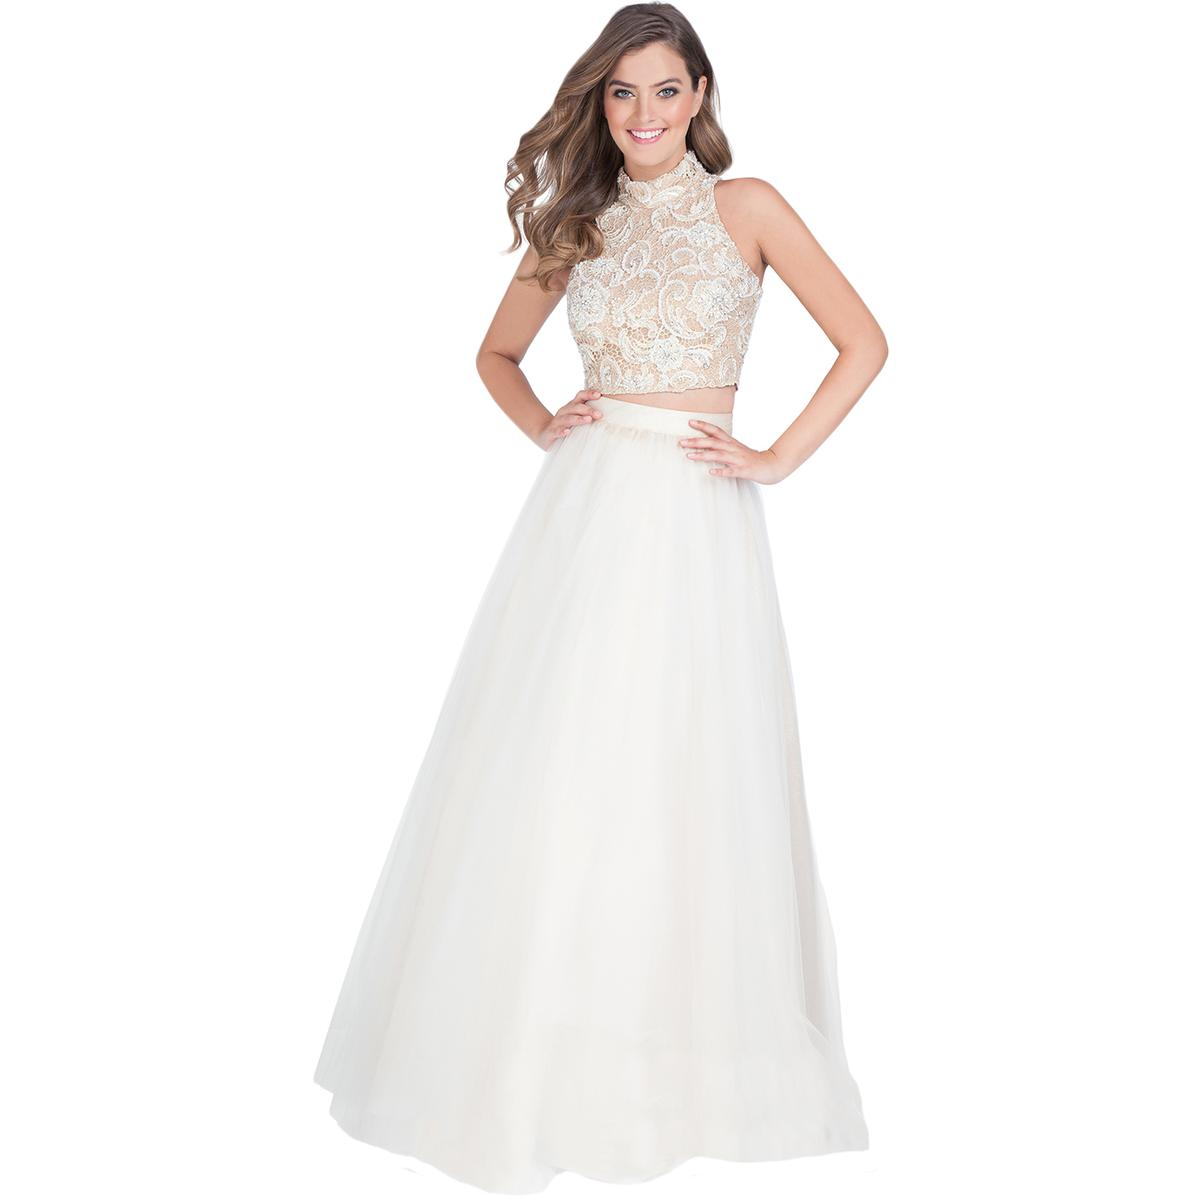 5ed3144970e Details about Terani Couture Ivory Lace Prom Crop Top Dress Gown 2 BHFO 2111